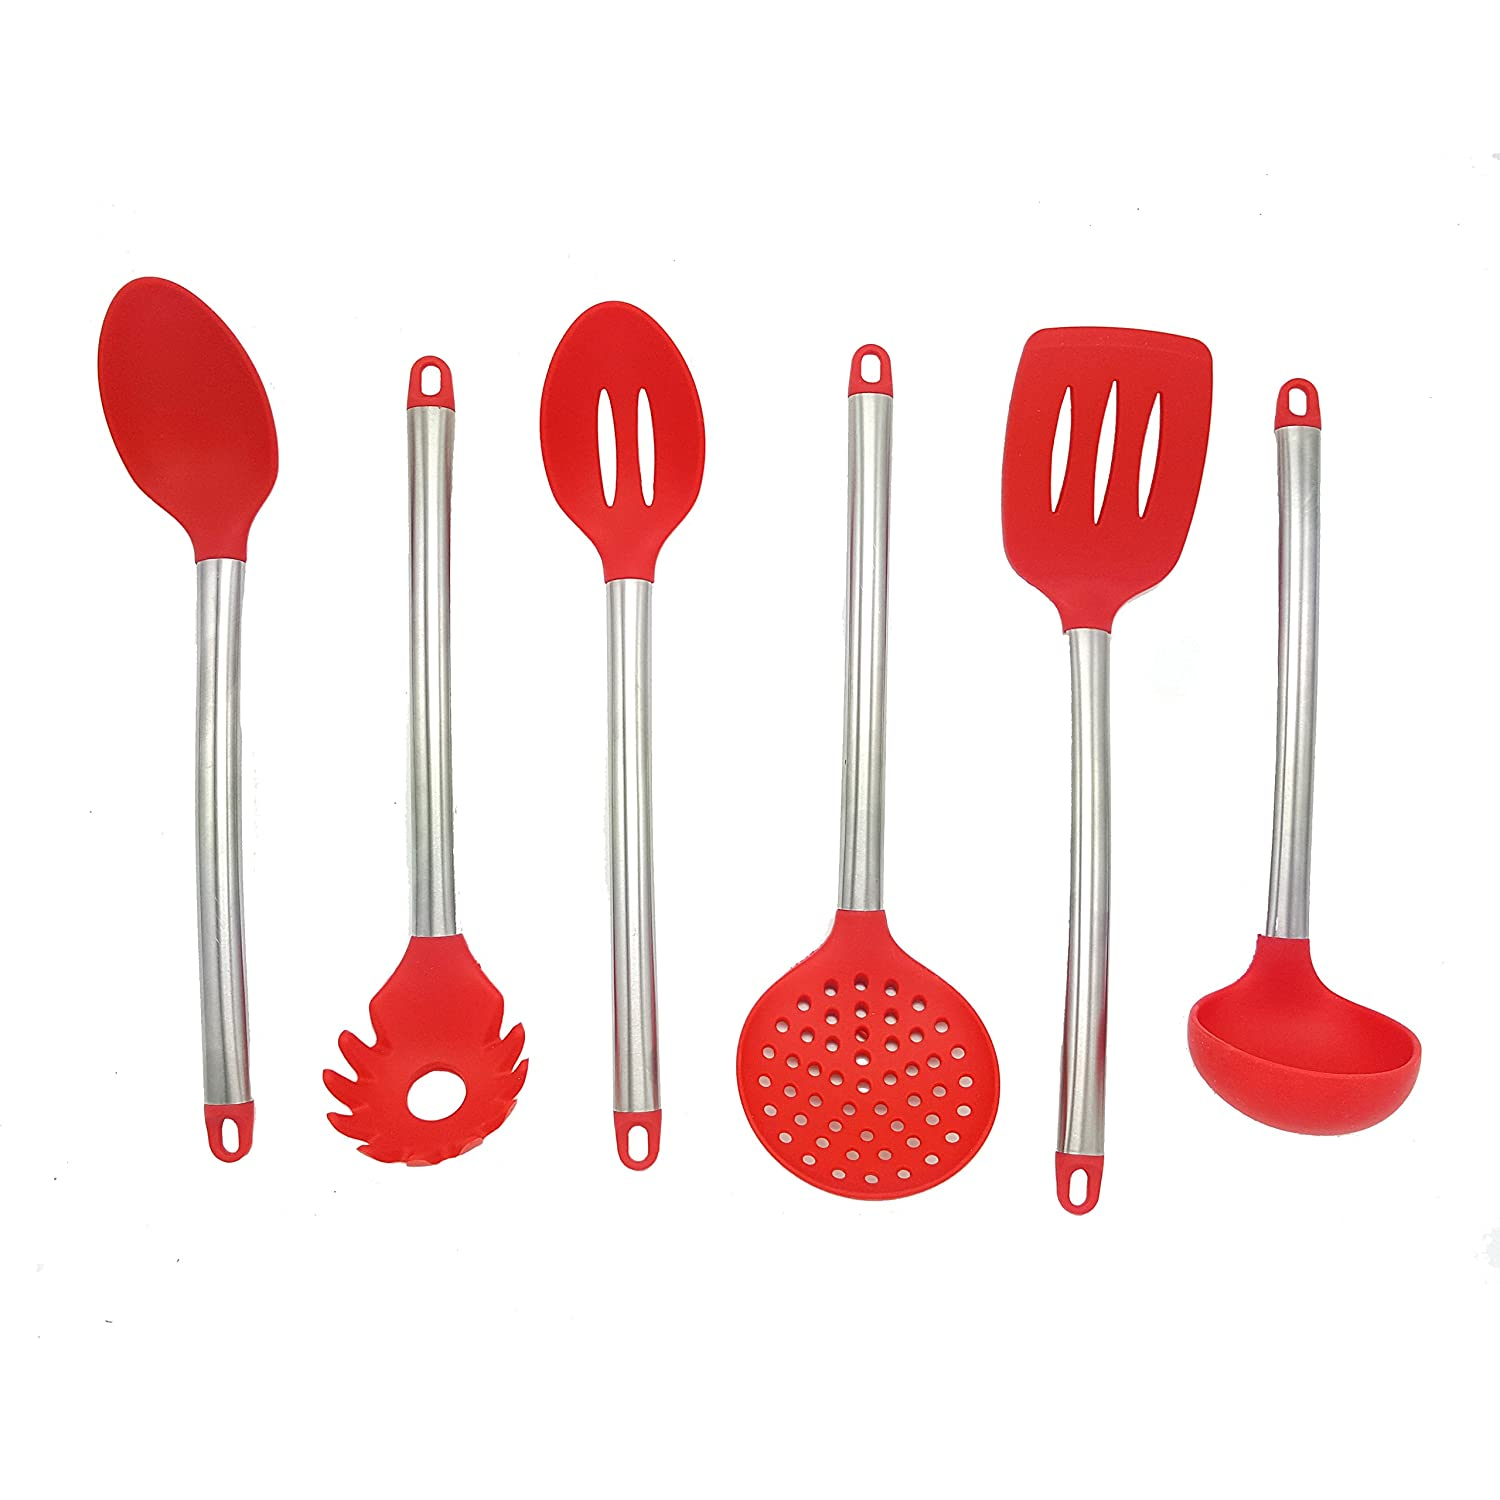 Kitchen Utensils Set with Stainless Steel Handle, Silicone Serving Heads, Plastic Holder Non Stick Heat Resistance Cooking Tool Set of 7 Red MAOYUAN